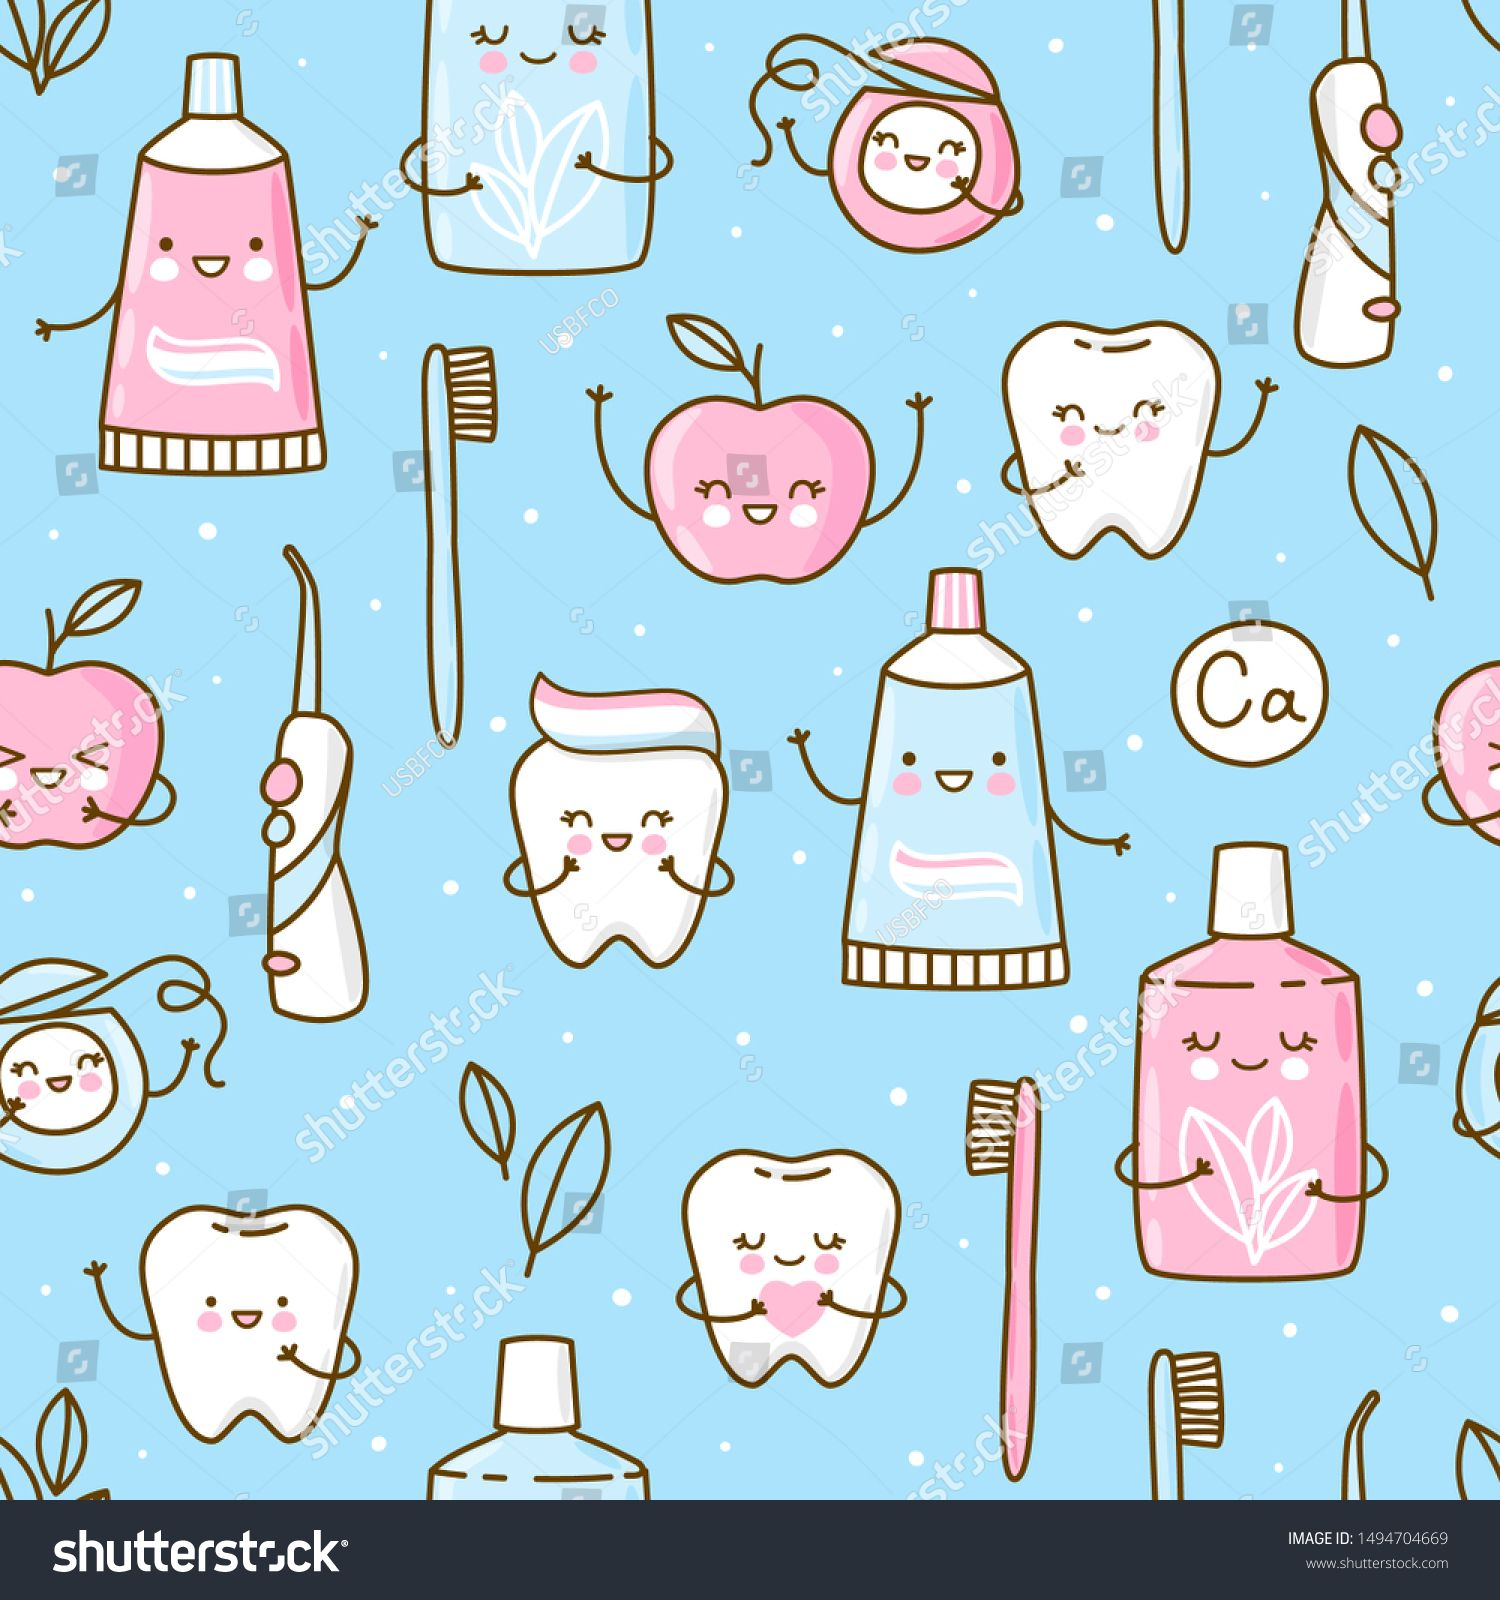 Seamless Pattern With Cute Teeth And Objects For Dental Care On Blue Background Funny Toothpaste Brush Apple Irrigator Dental Fl Graficheskij Dizajn Dizajn